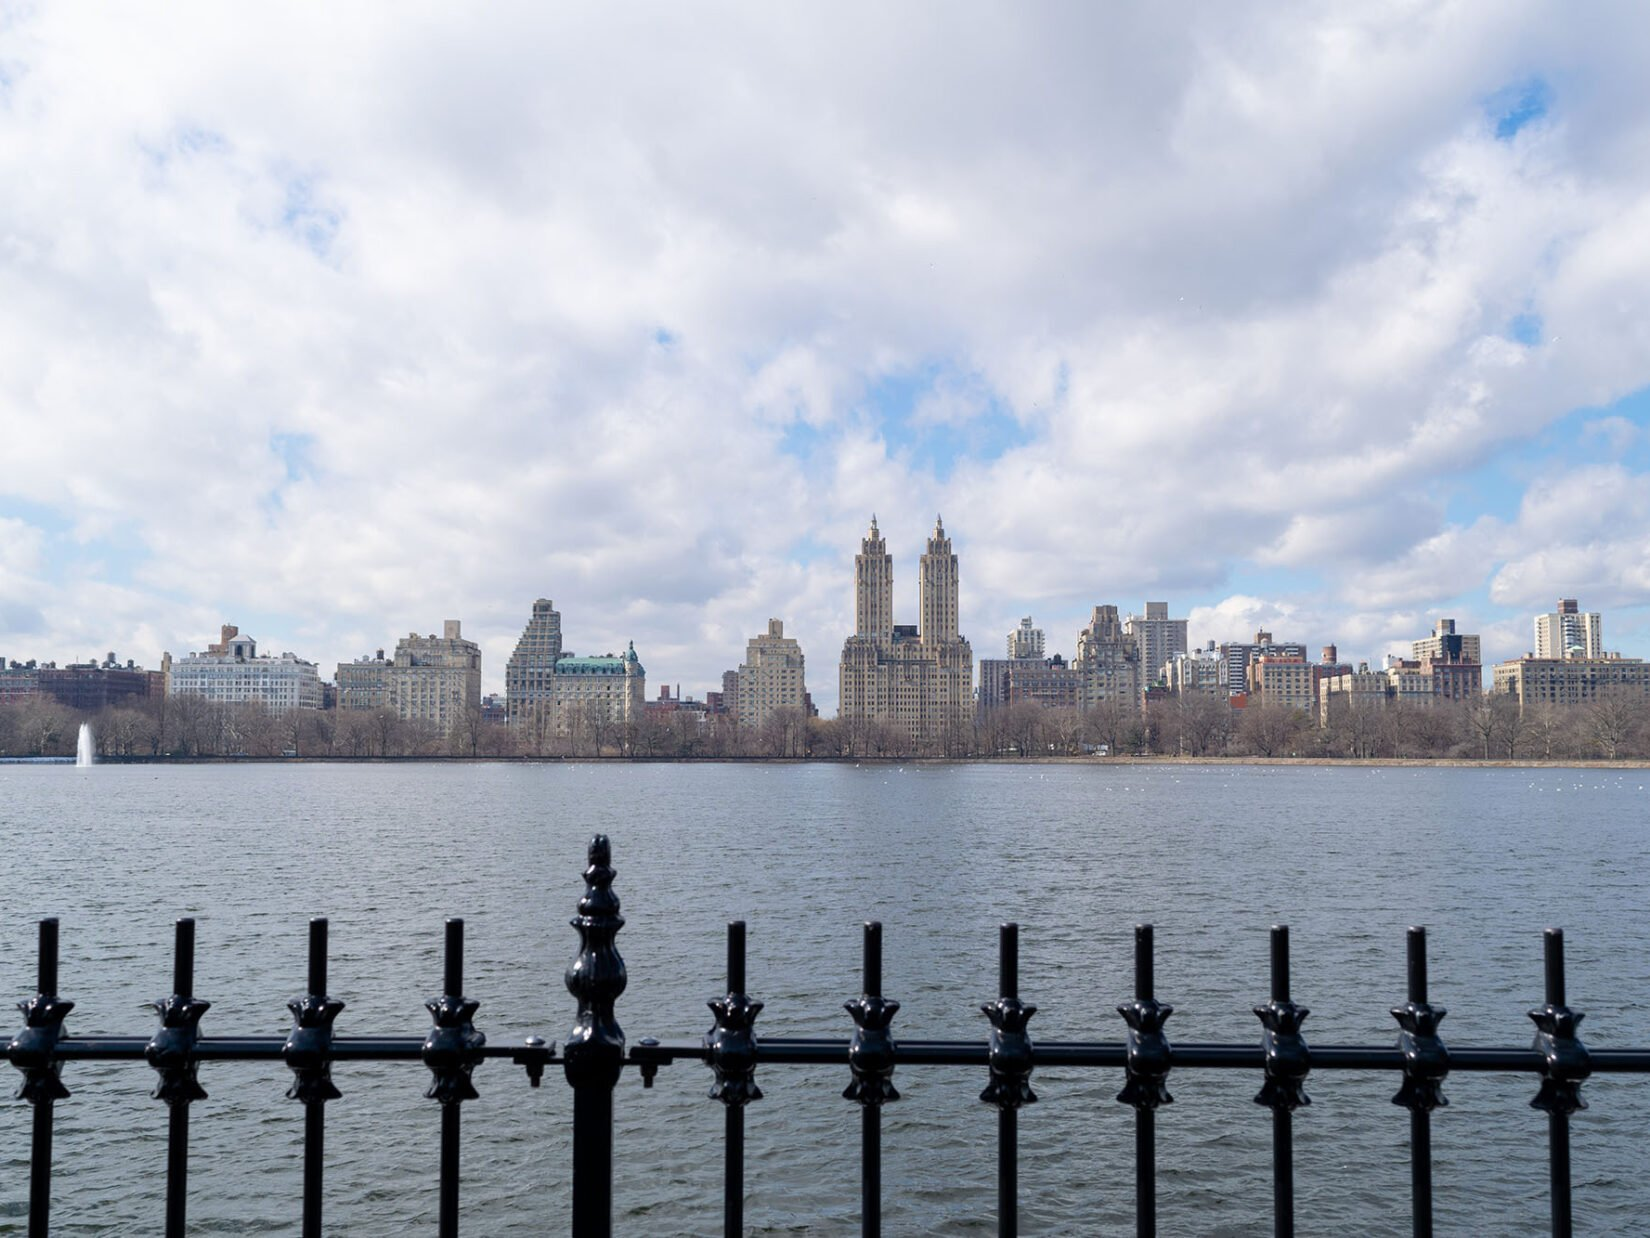 Looking across the Reservoir on a cloudy day with the ironwork of the fence in the foreground